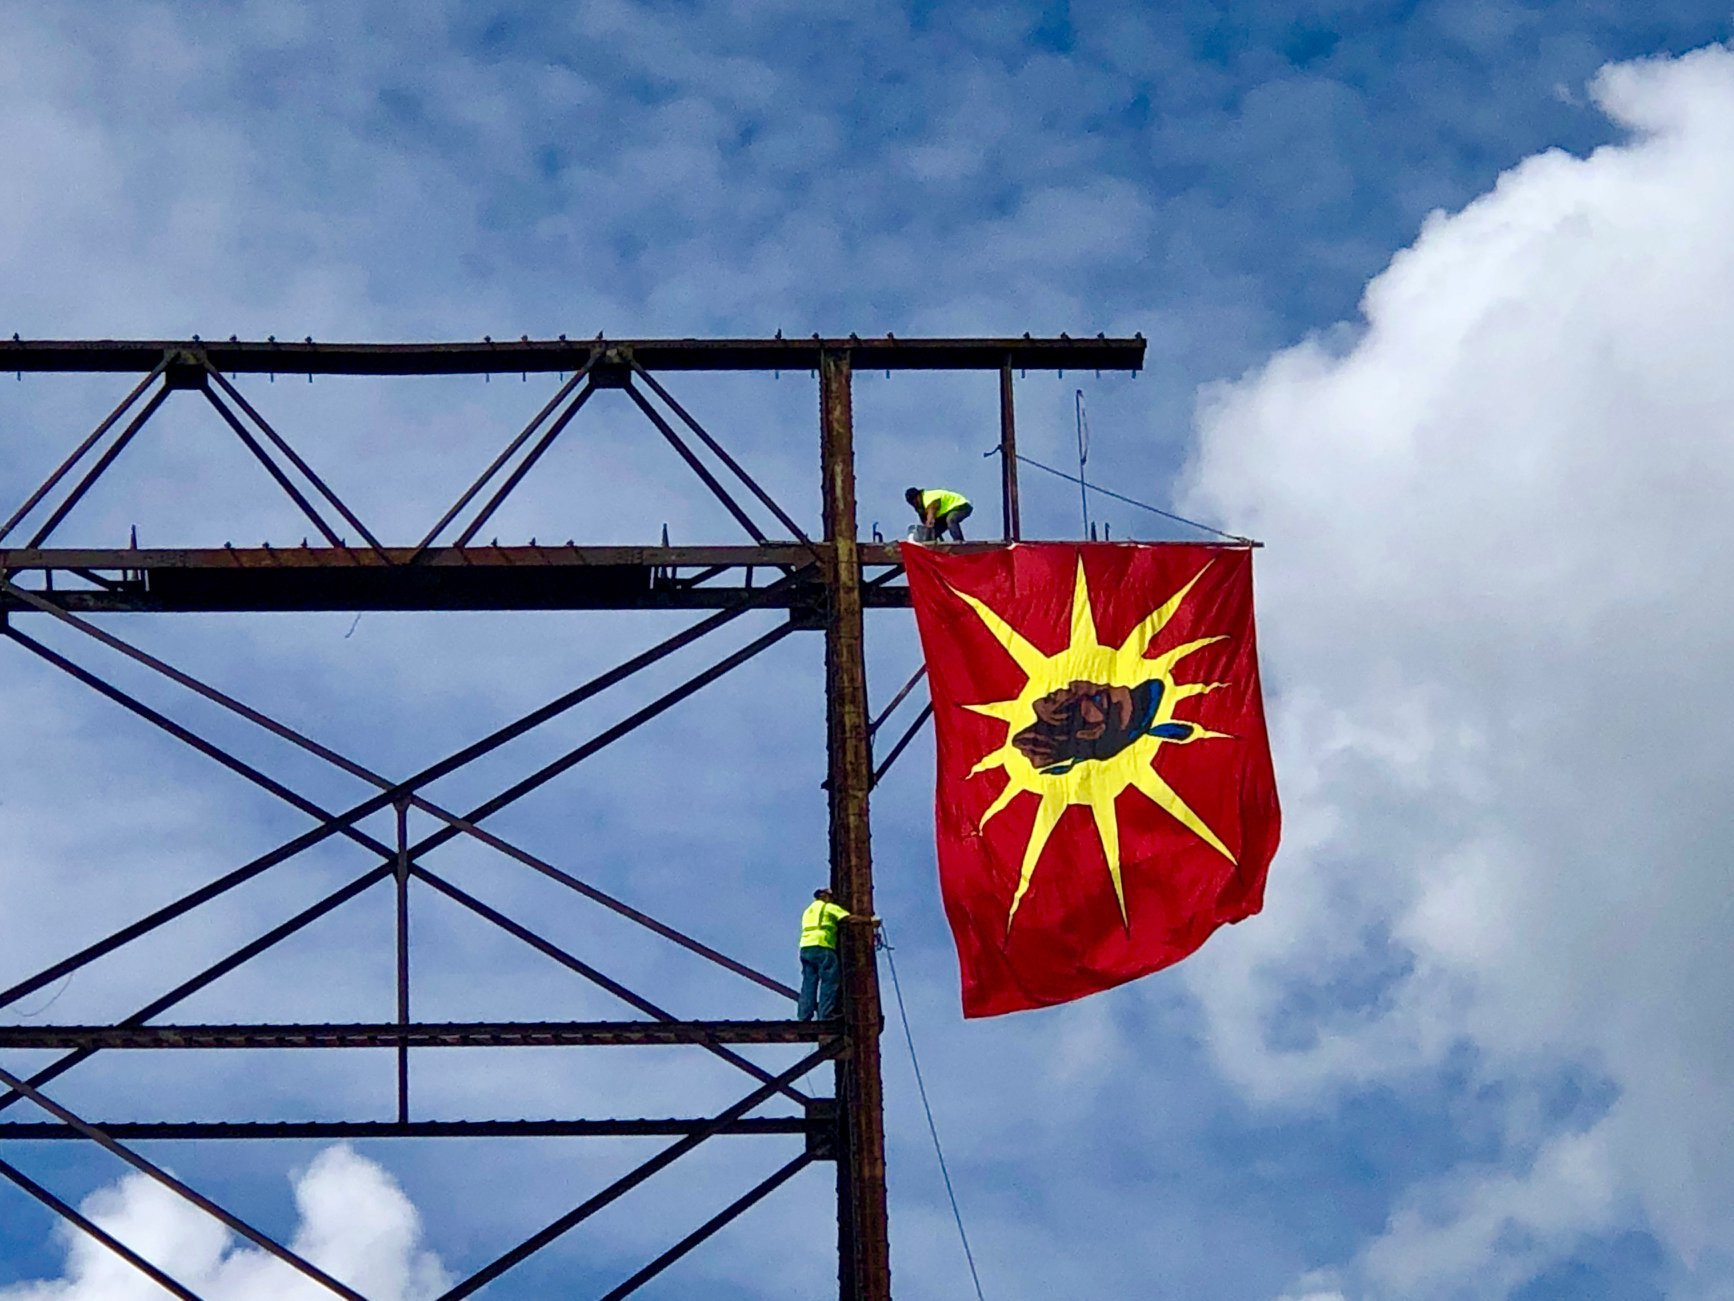 In 2019, several large-scale flags were hung off the Honoré Mercier Bridge in Kahnawake, Que., to commemorate the 29th anniversary of the Oka Crisis. (Submitted by Deidre Diome)